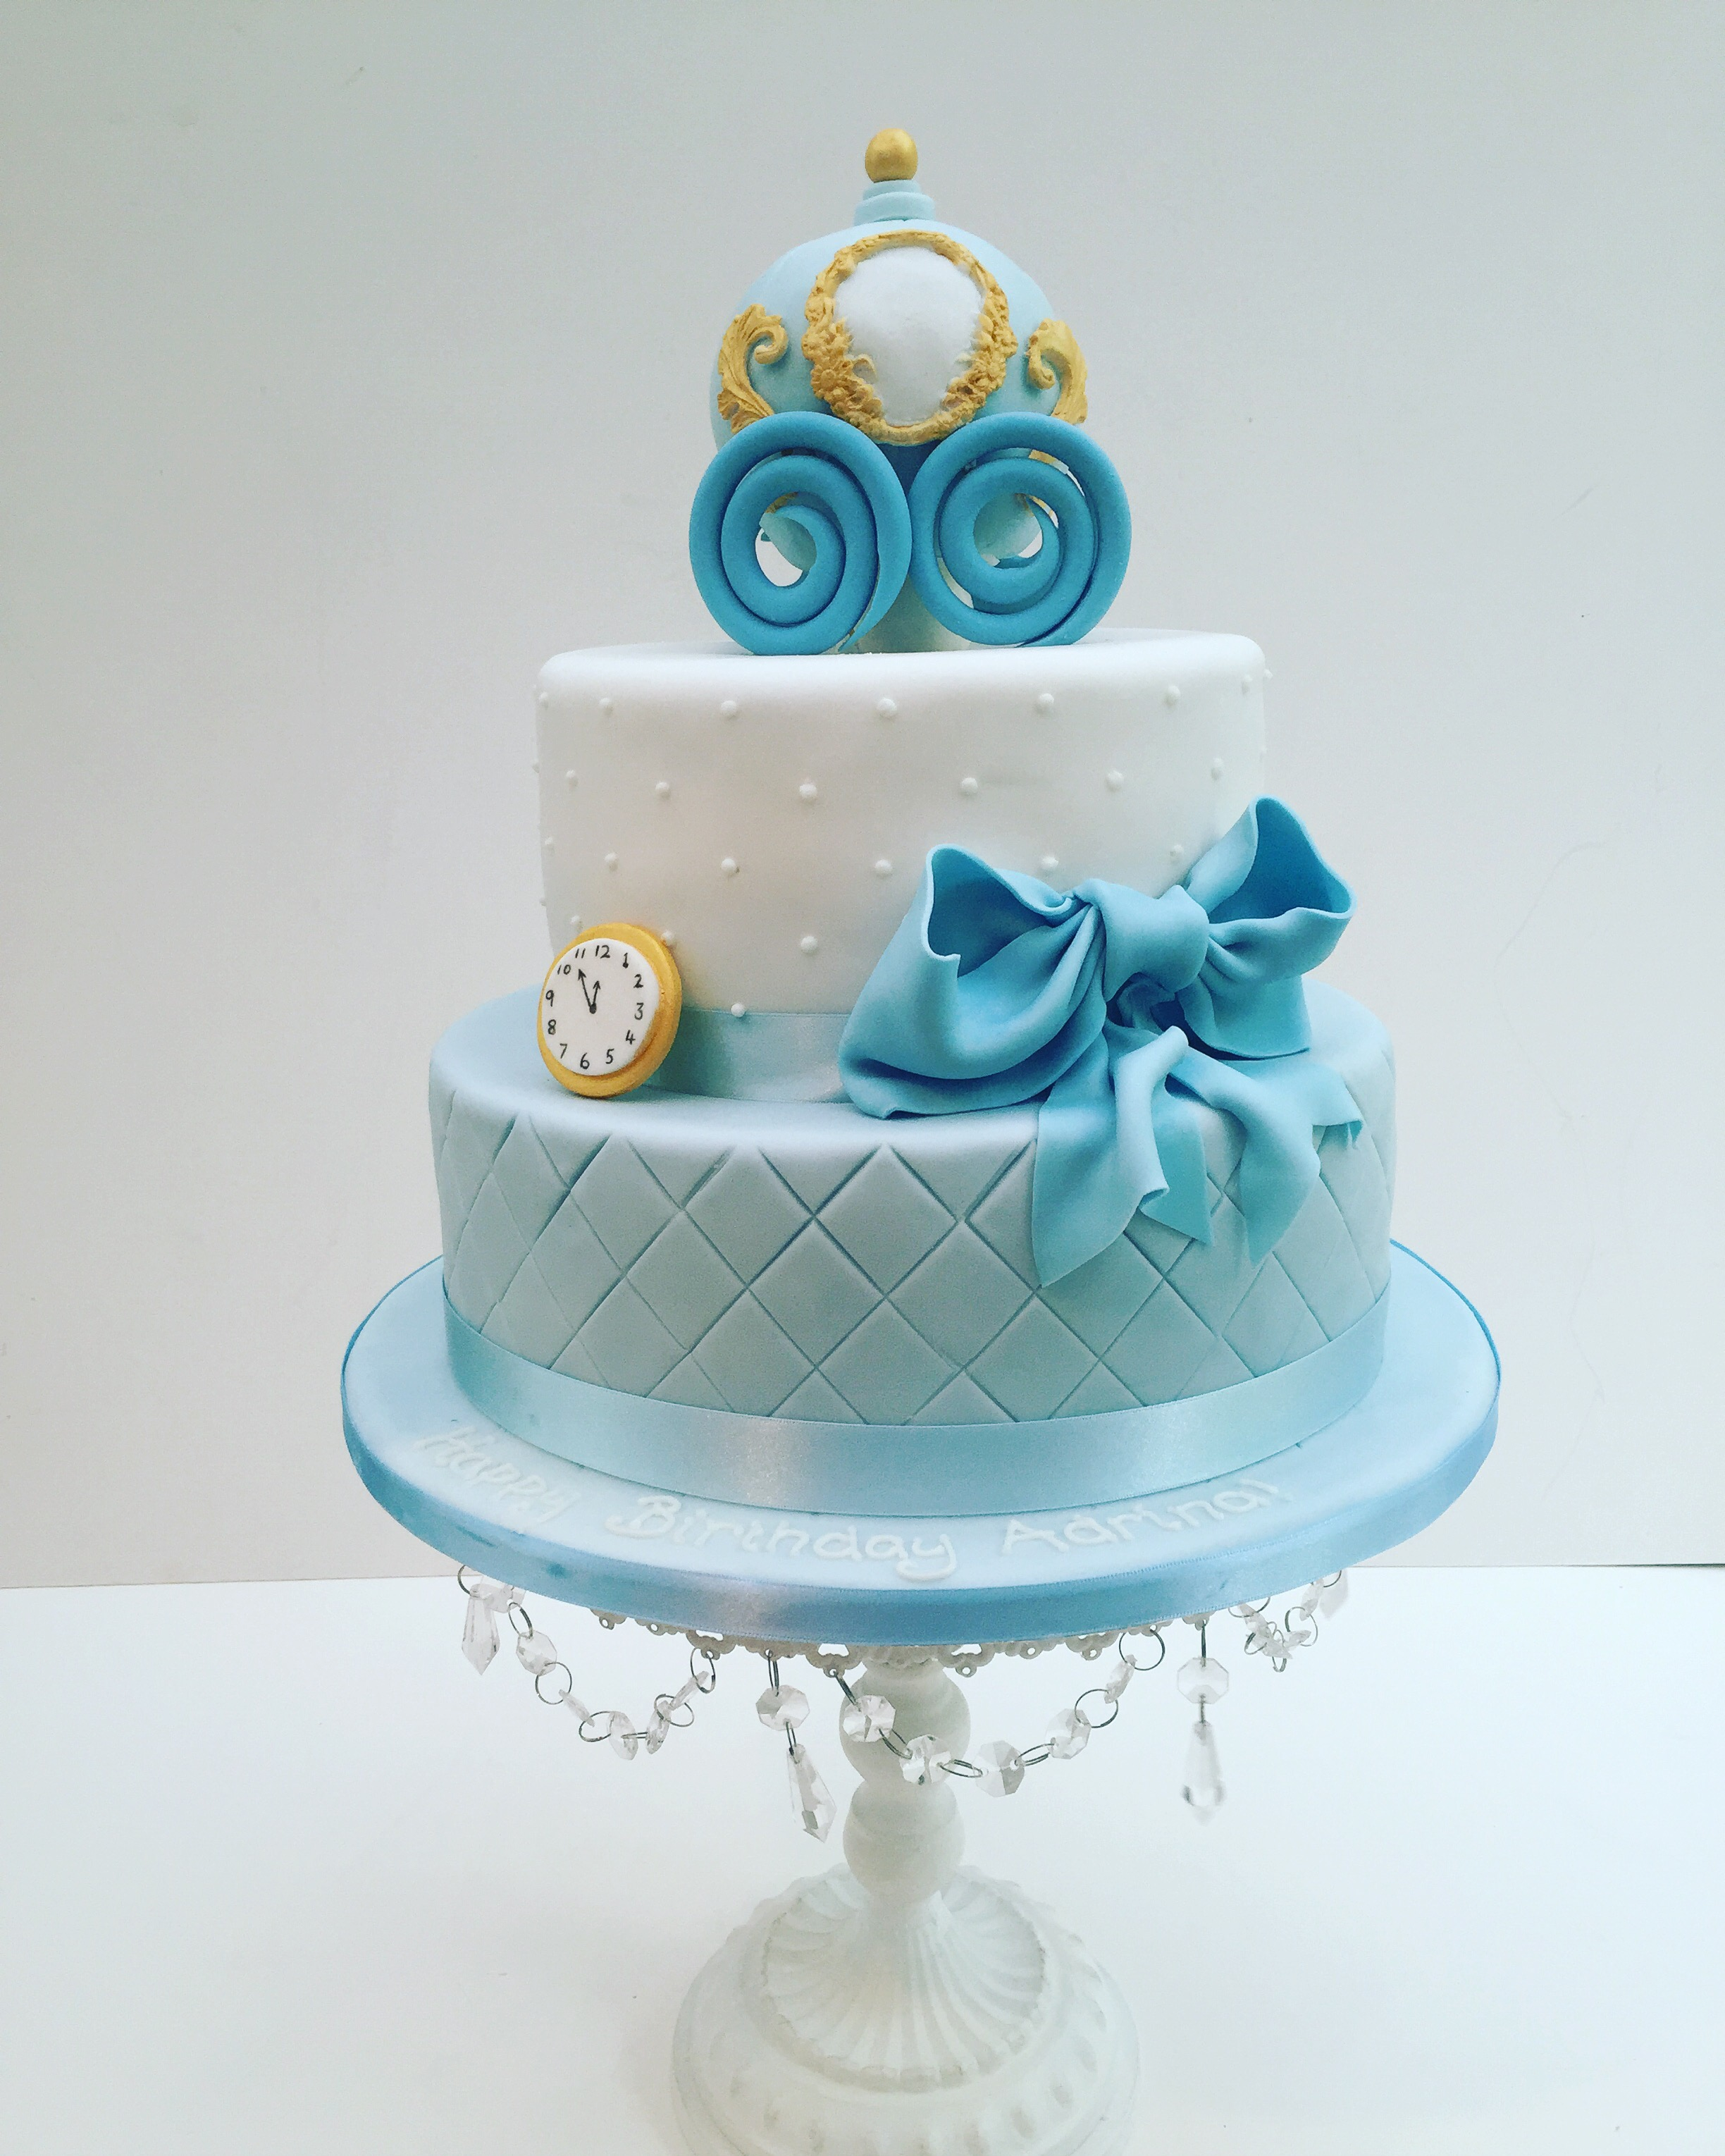 Cinderella and pumpkin carriage cake | Etoile Bakery